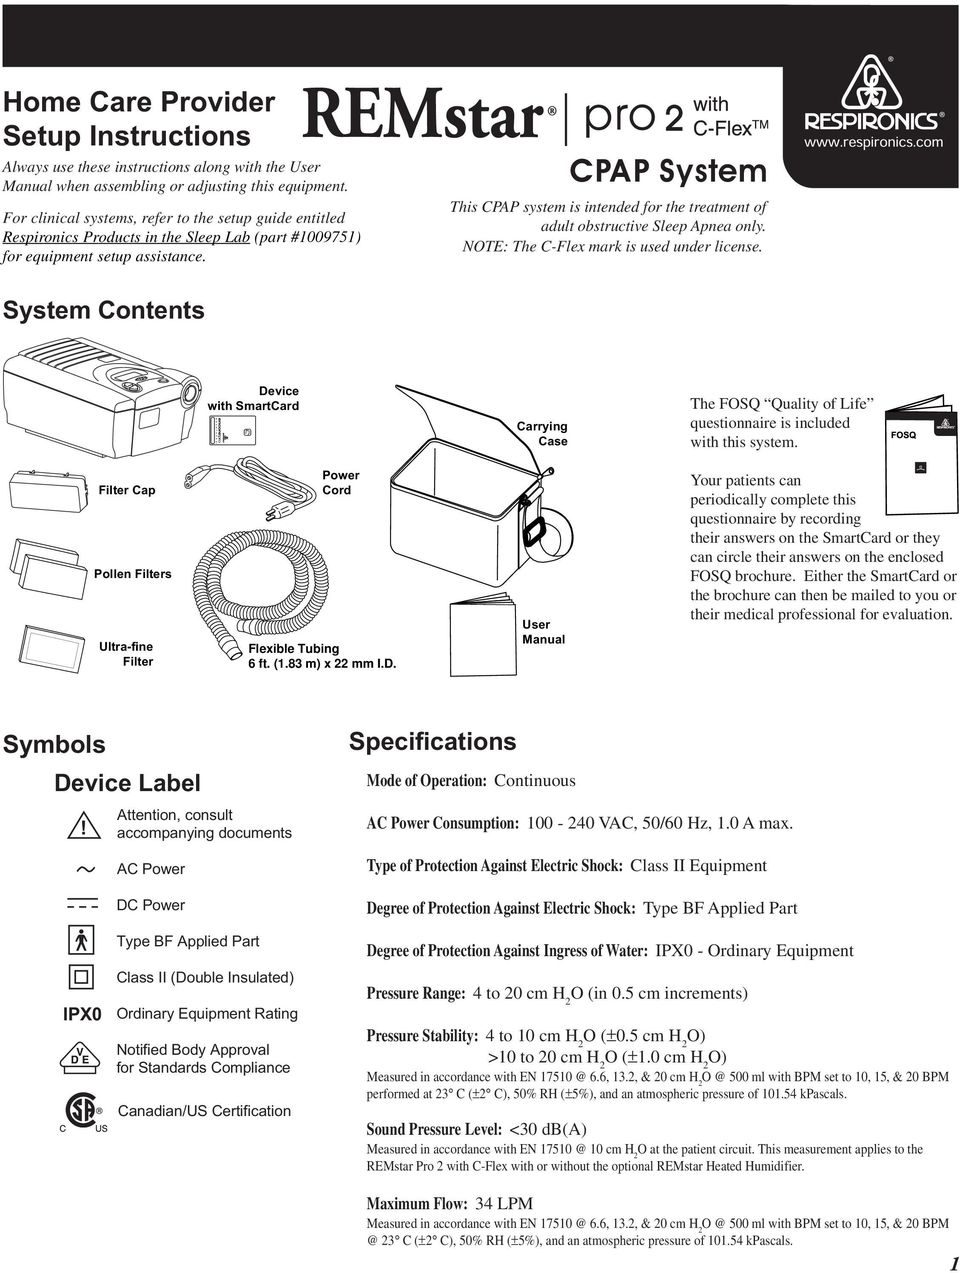 CPAP System This CPAP system is intended for the treatment of adult obstructive Sleep Apnea only. NOTE: The C-Flex mark is used under license.